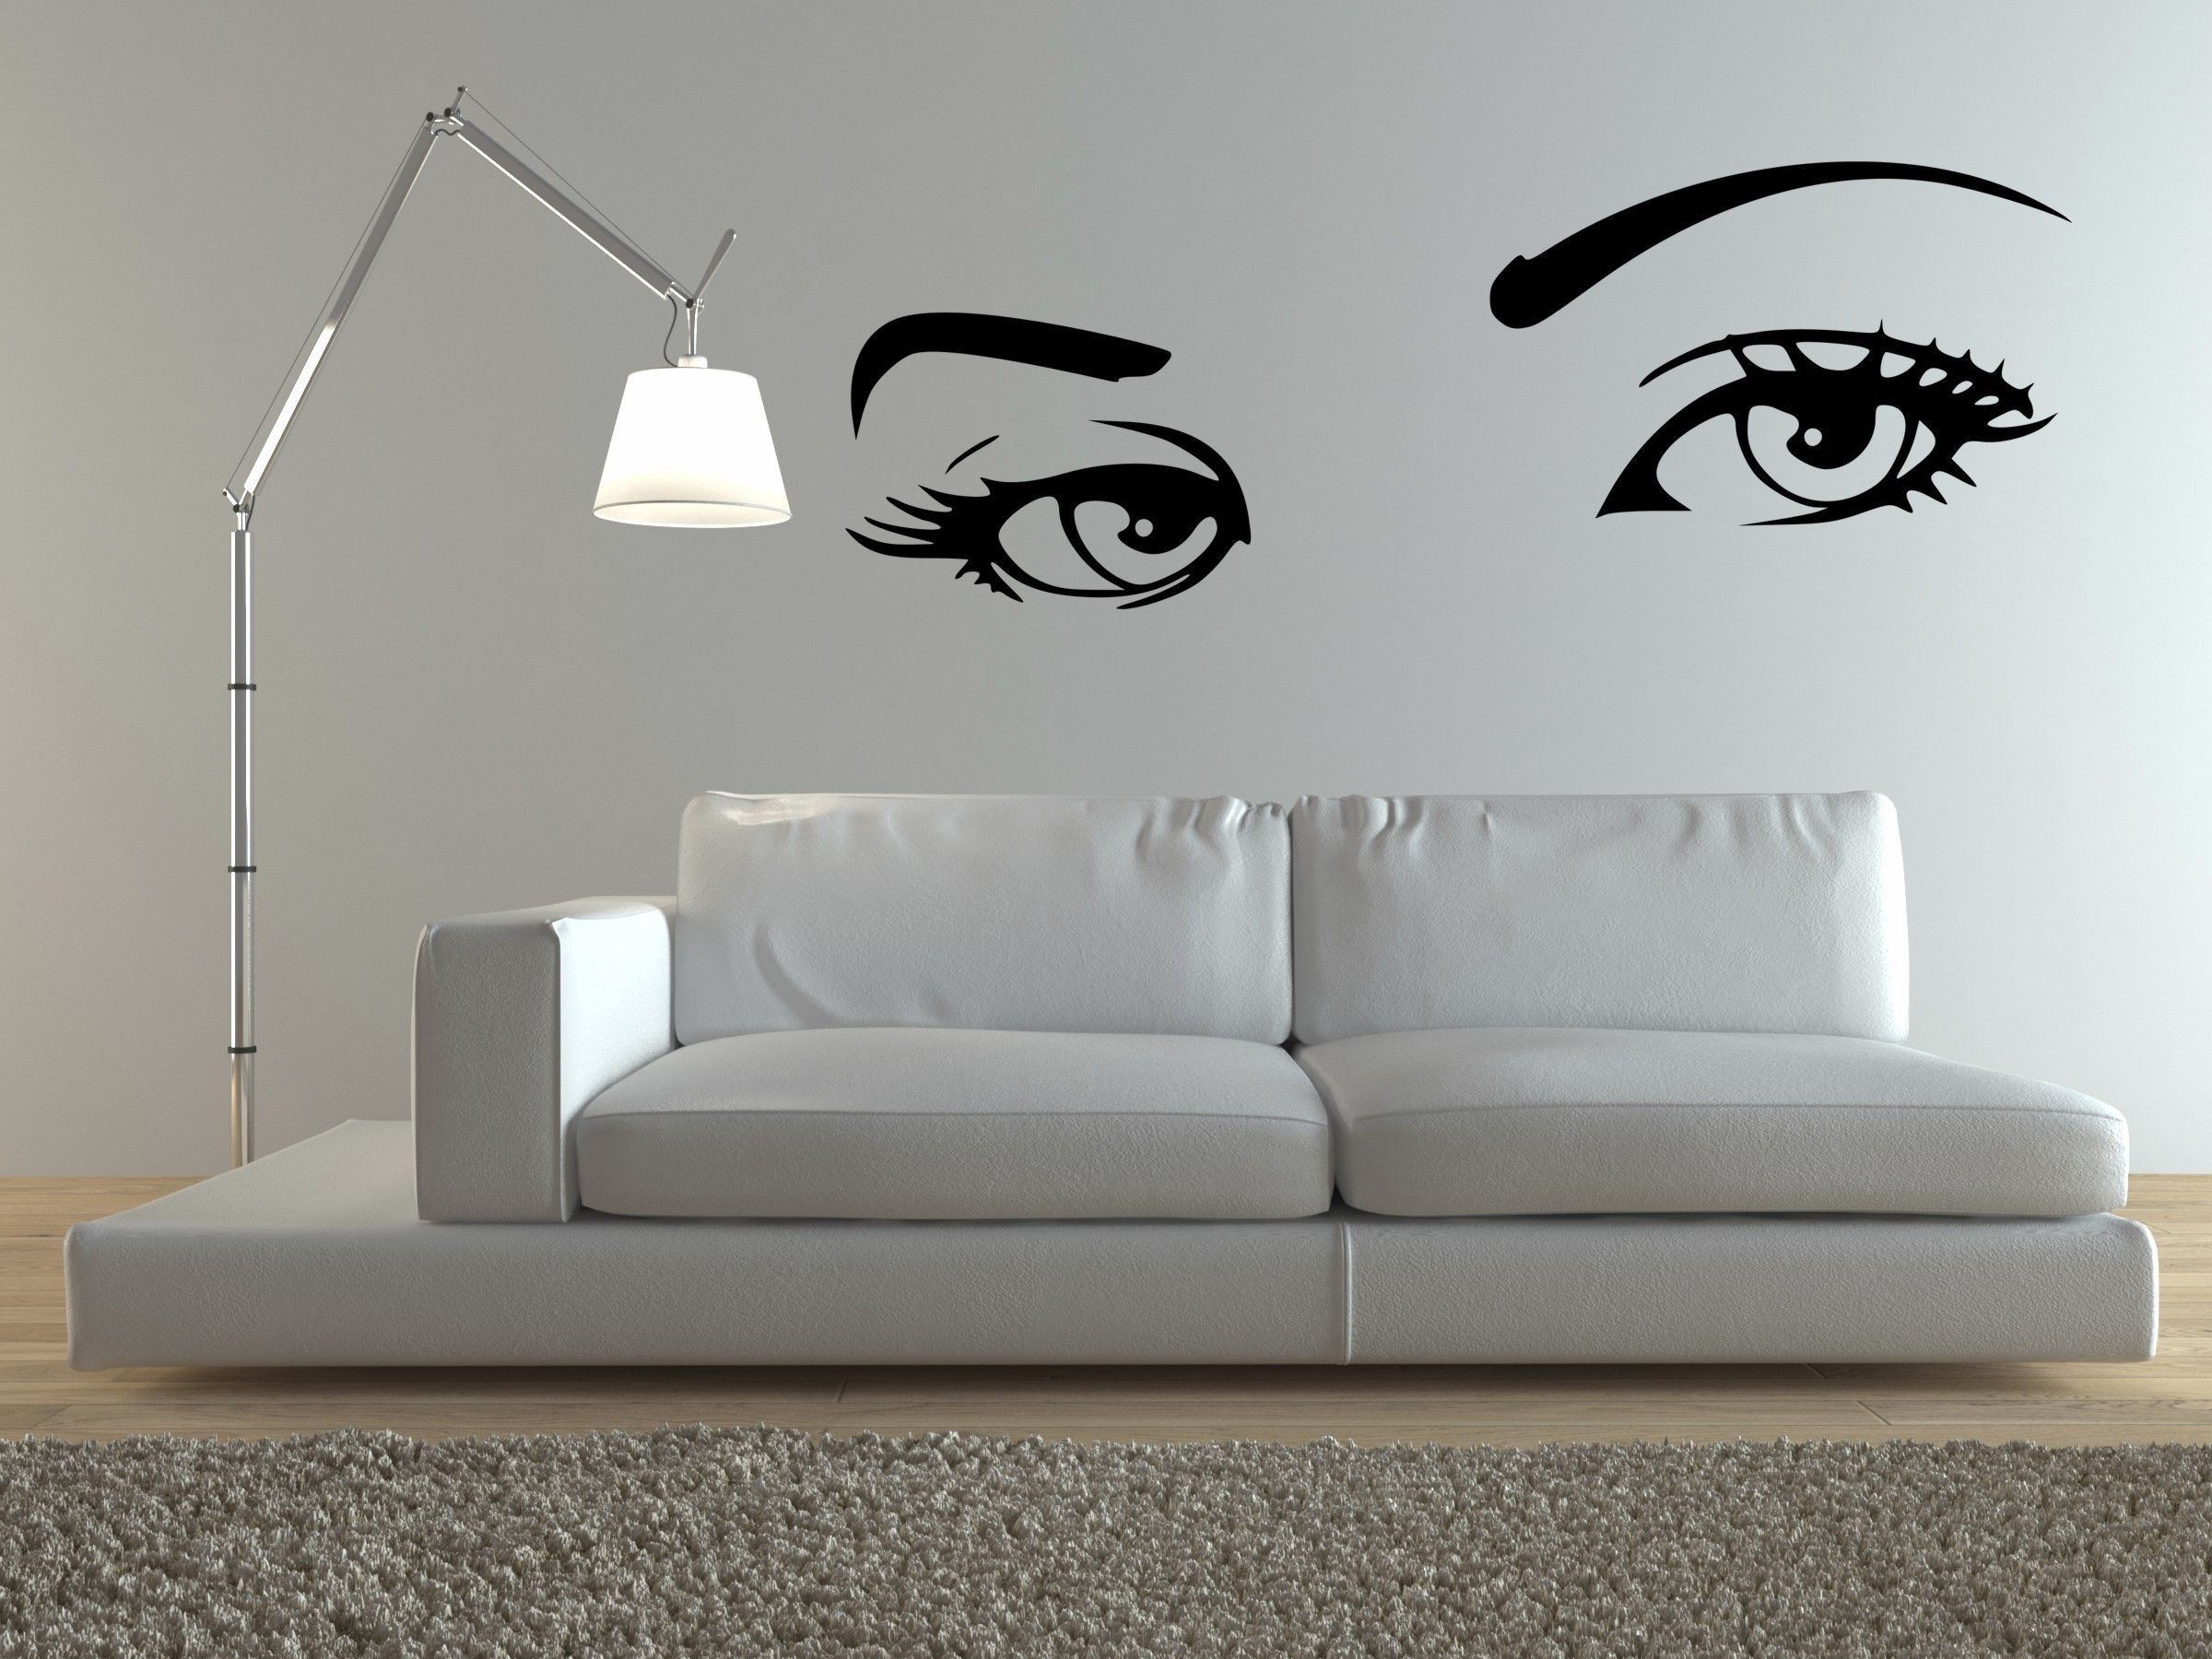 Custom Wall Stickers Wall Of Photos Pinterest Solar Eyes - Interior design wall stickers